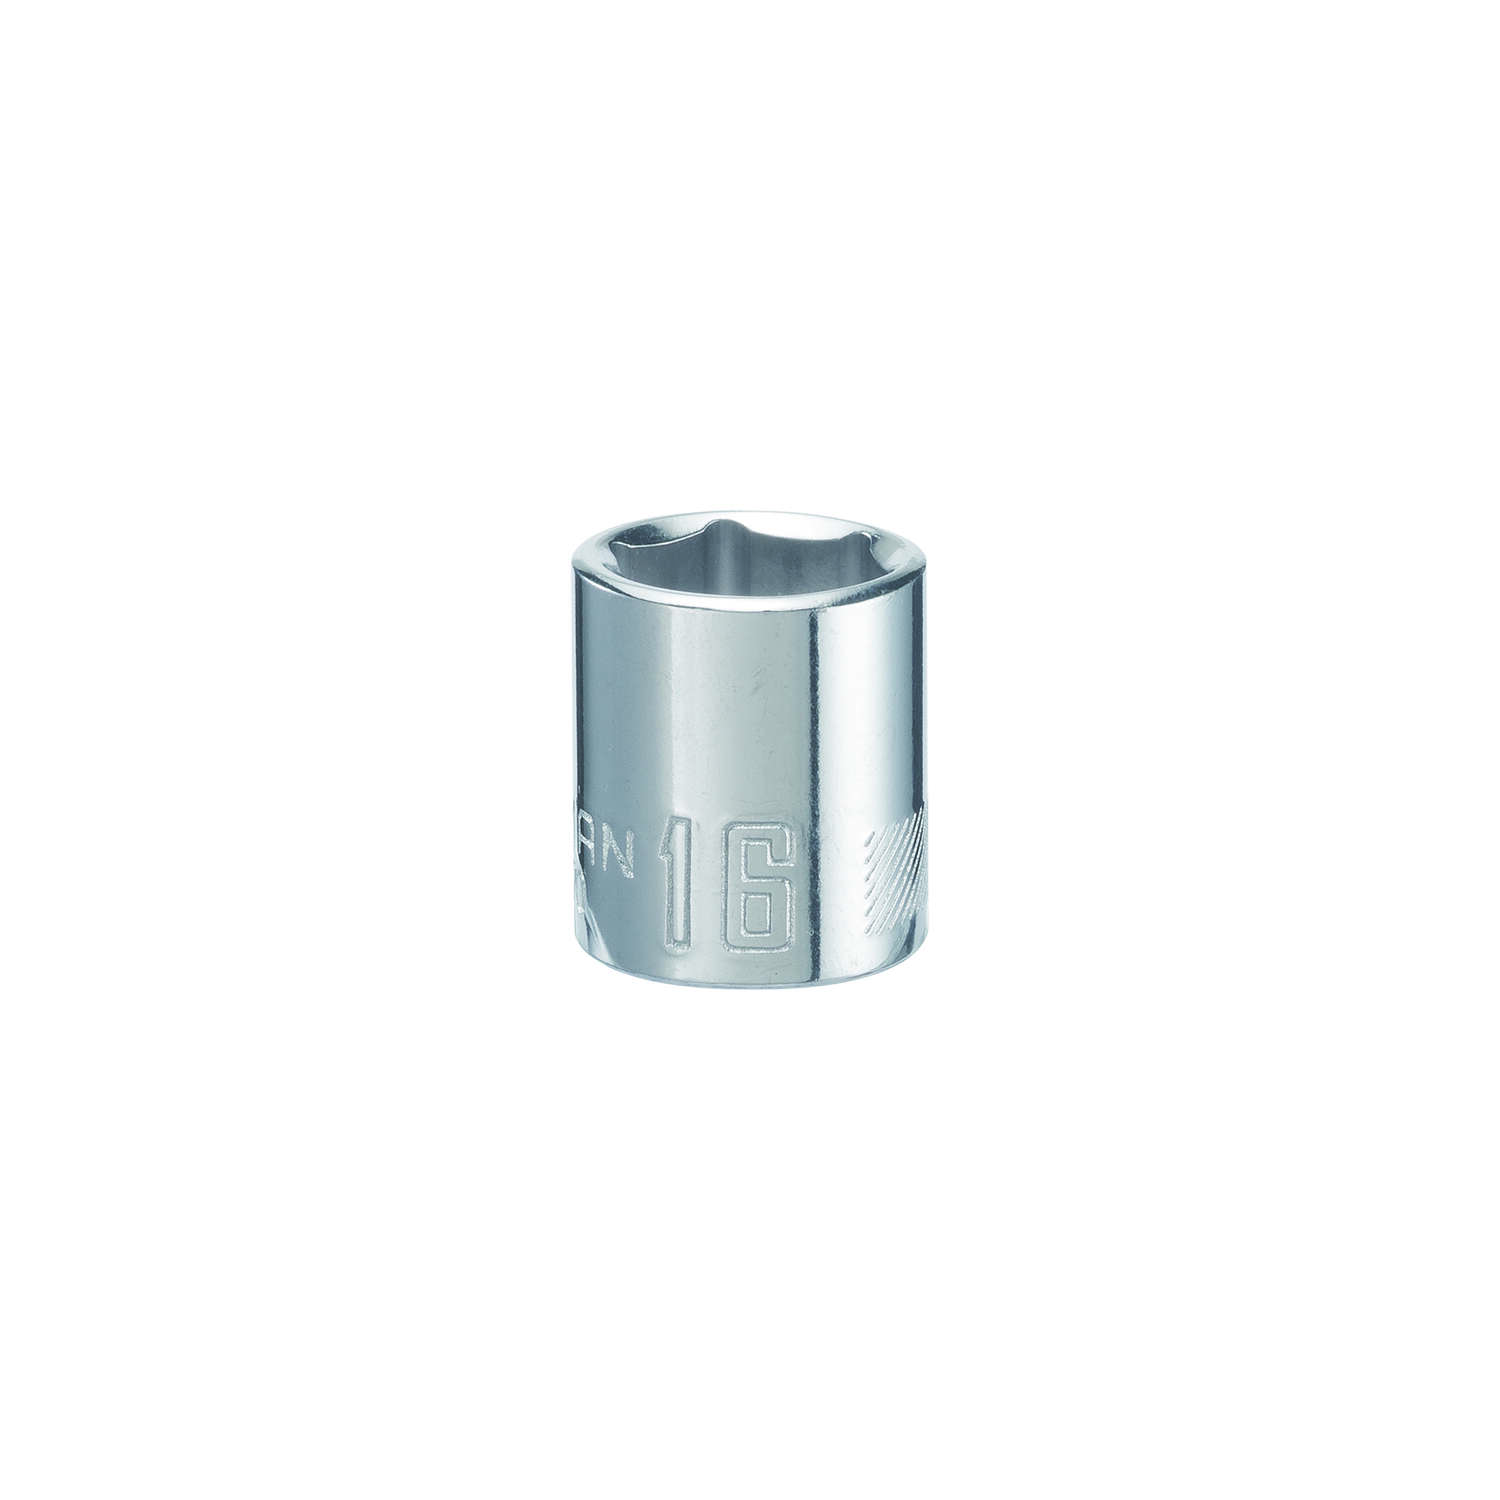 Craftsman  16 mm  x 3/8 in. drive  Metric  6 Point Standard  Shallow Socket  1 pc.